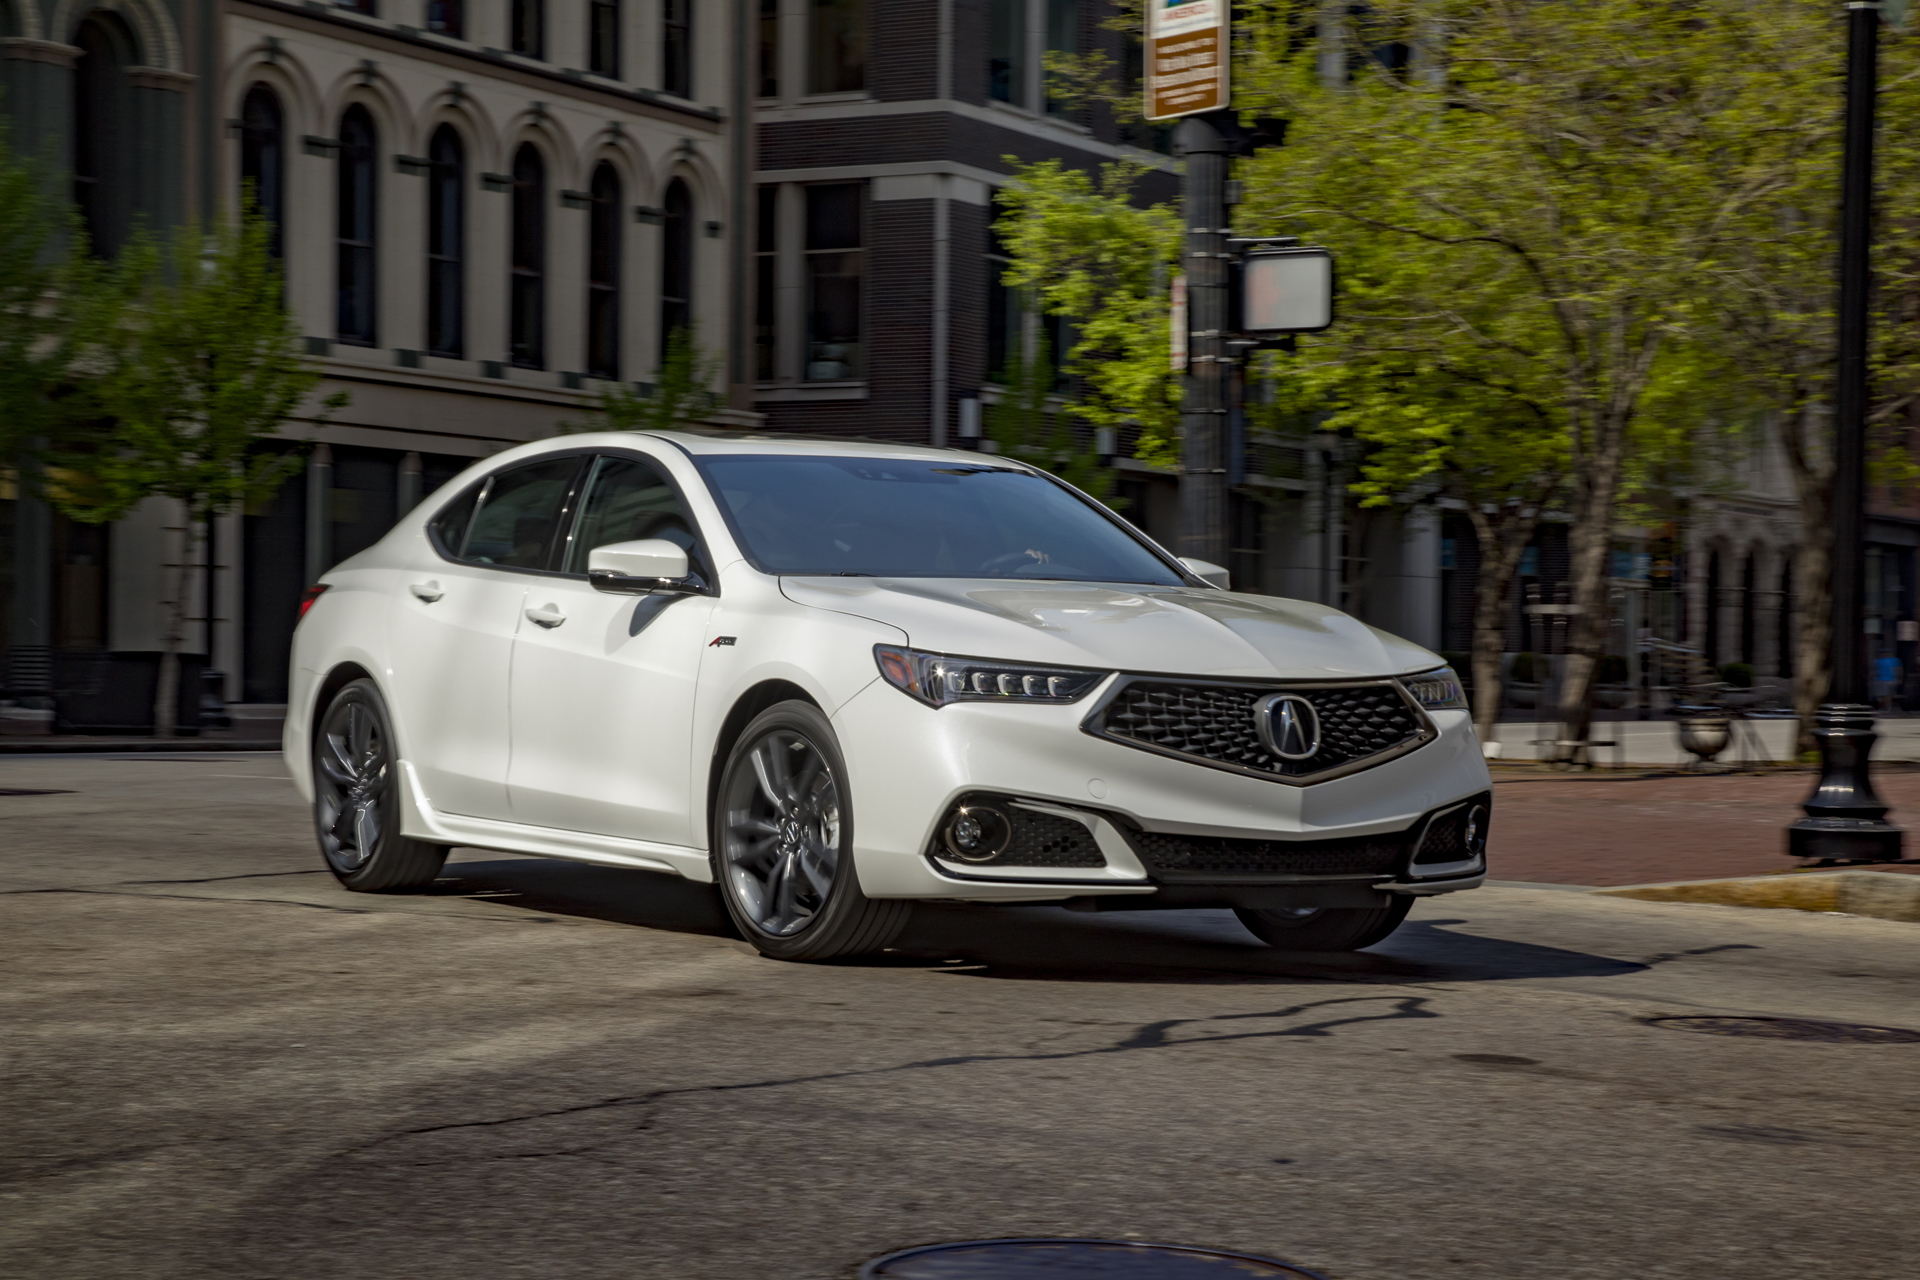 acura tlx a spec first drive review character by committee autozaurus. Black Bedroom Furniture Sets. Home Design Ideas